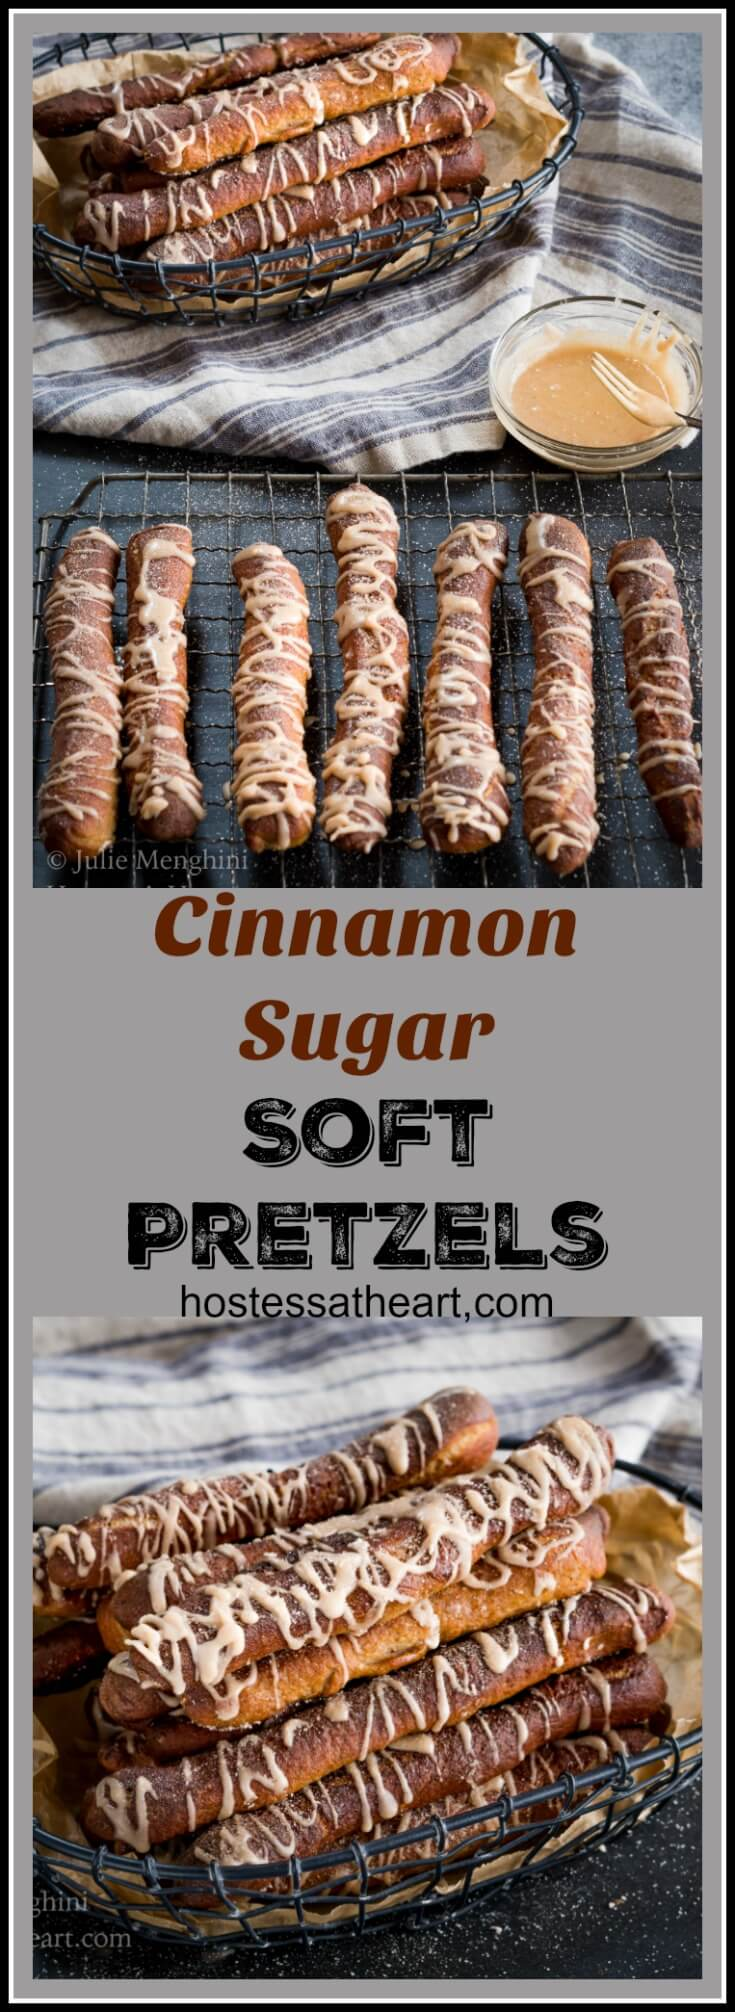 Cinnamon Sugar Soft Pretzel recipe is a made with a pretzel dough slightly sweetened with brown sugar and warm cinnamon and finished with a cinnamon glaze drizzle. They're the perfect finger food! #BreadBakers #Homemade #ComfortFood #Appetizers   Appetizers,